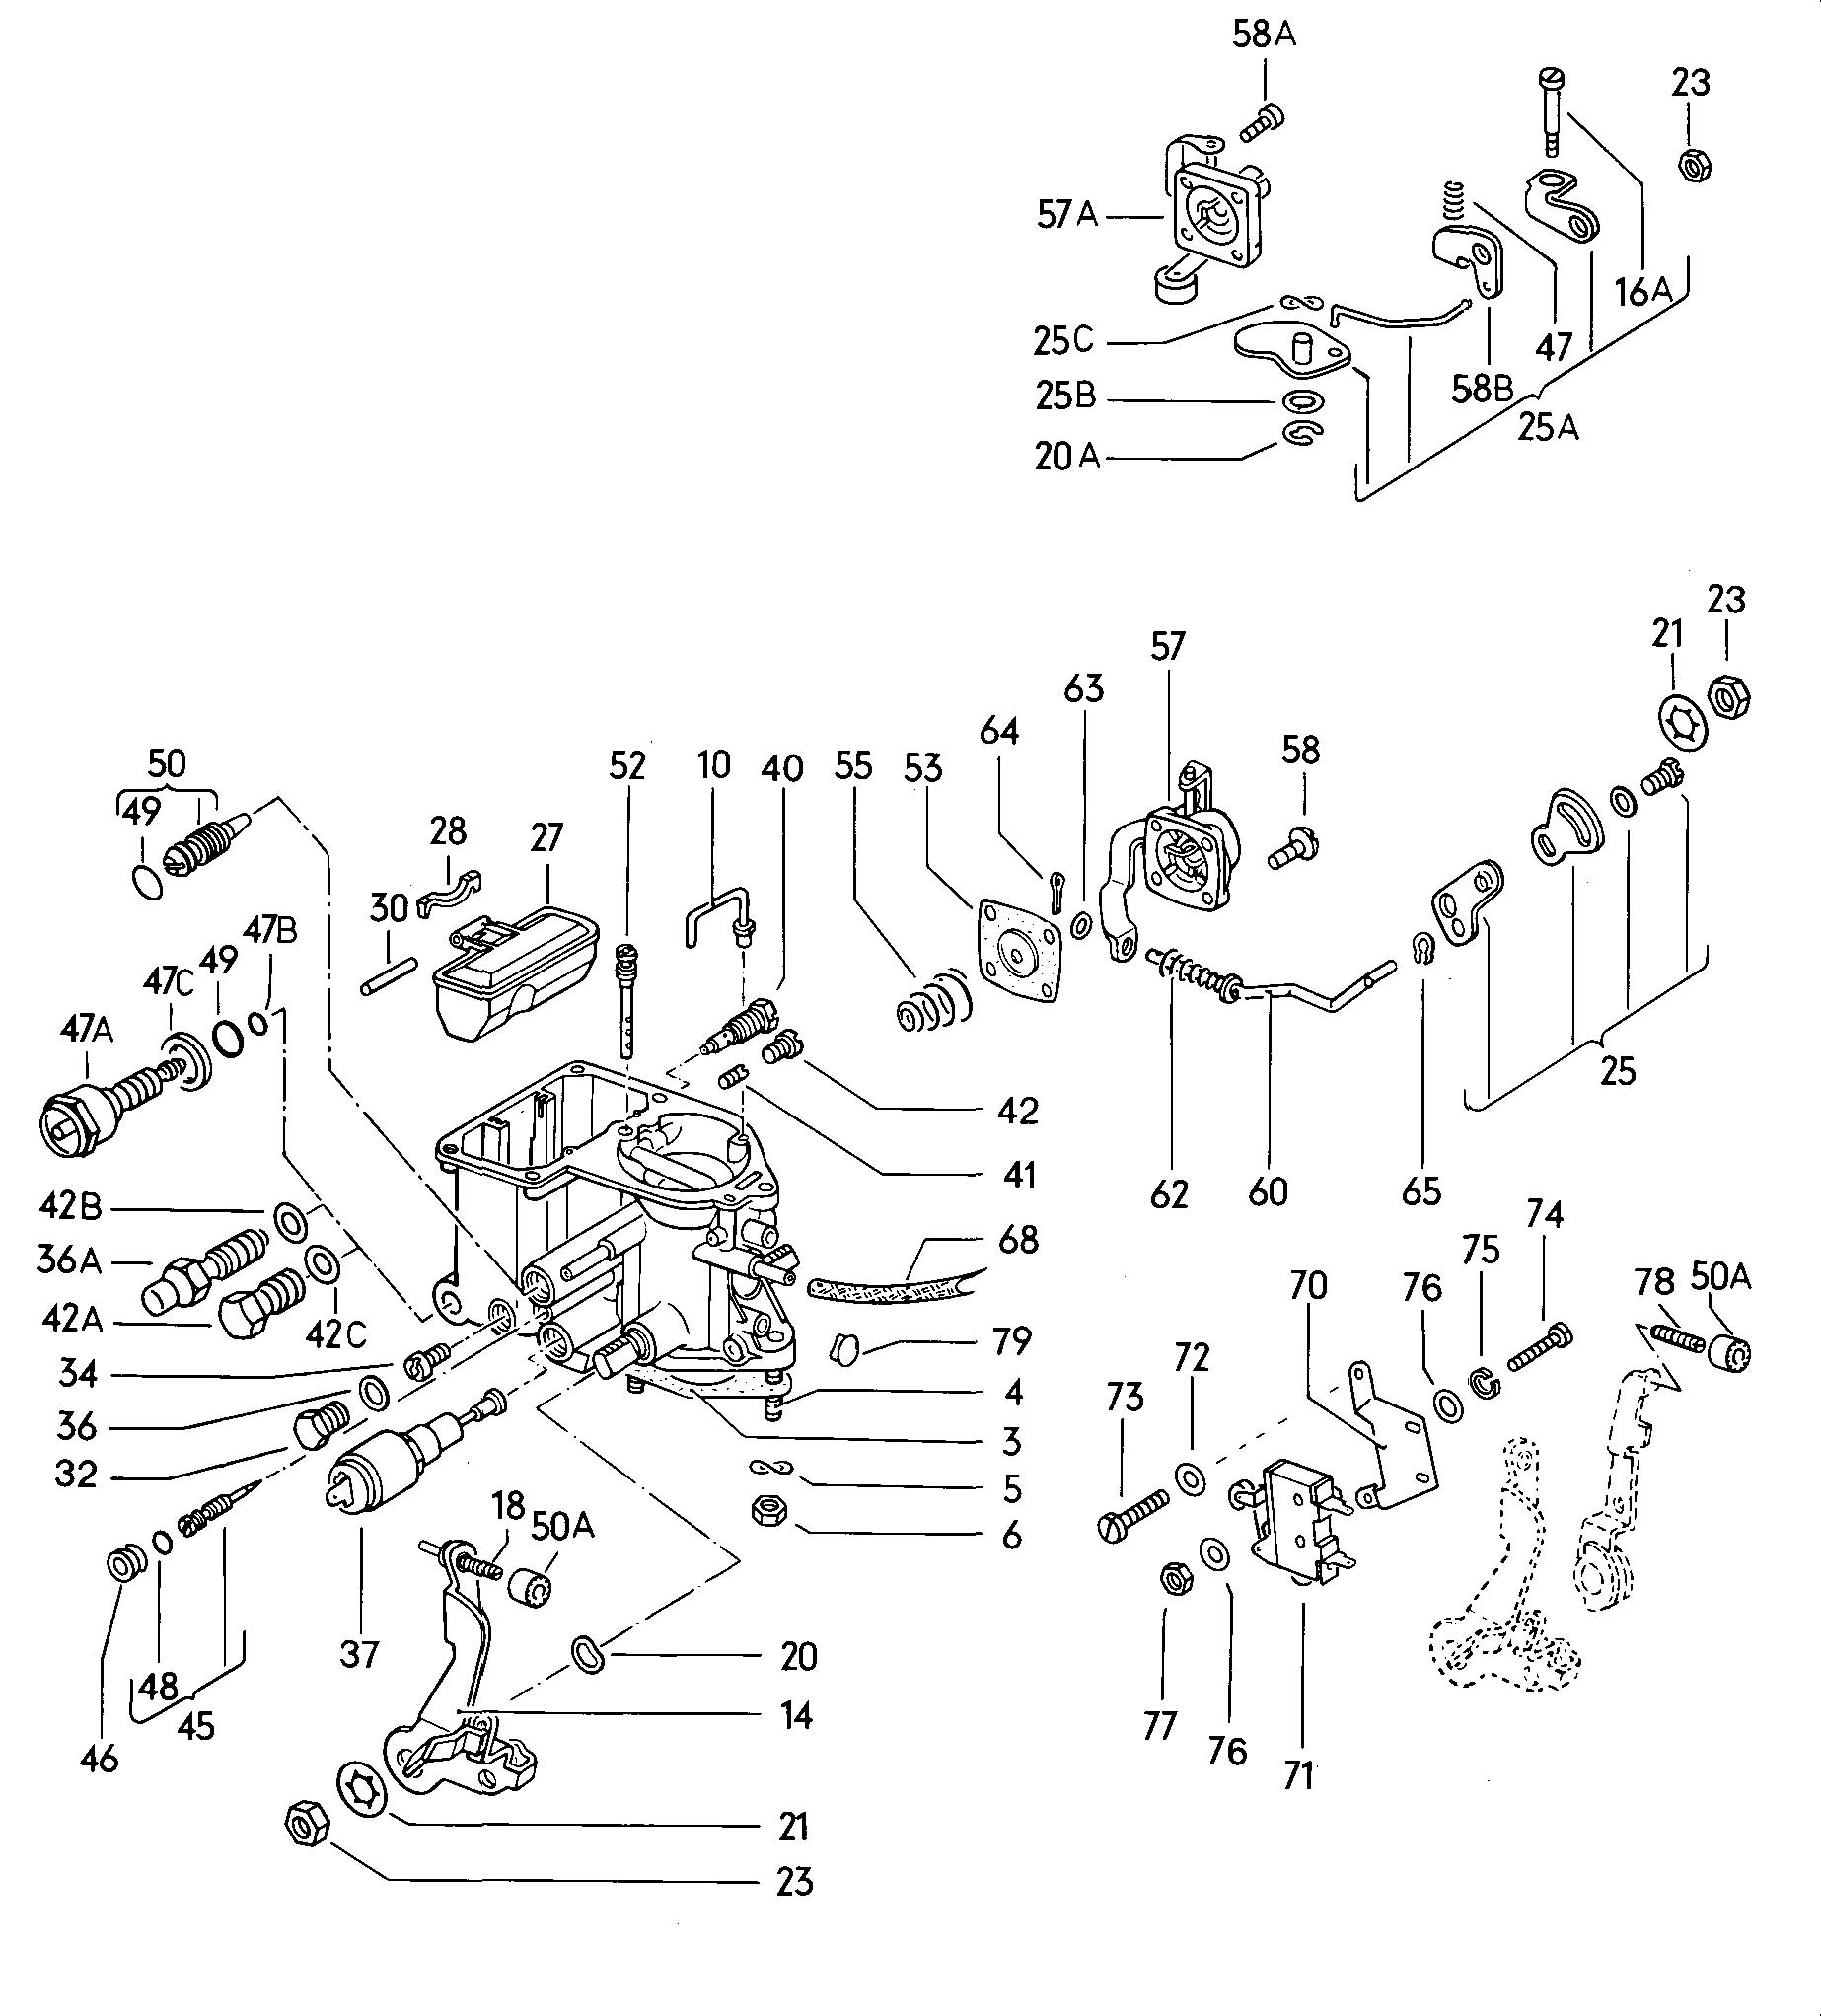 vw 1300 engine parts diagram  wiring  auto wiring diagram